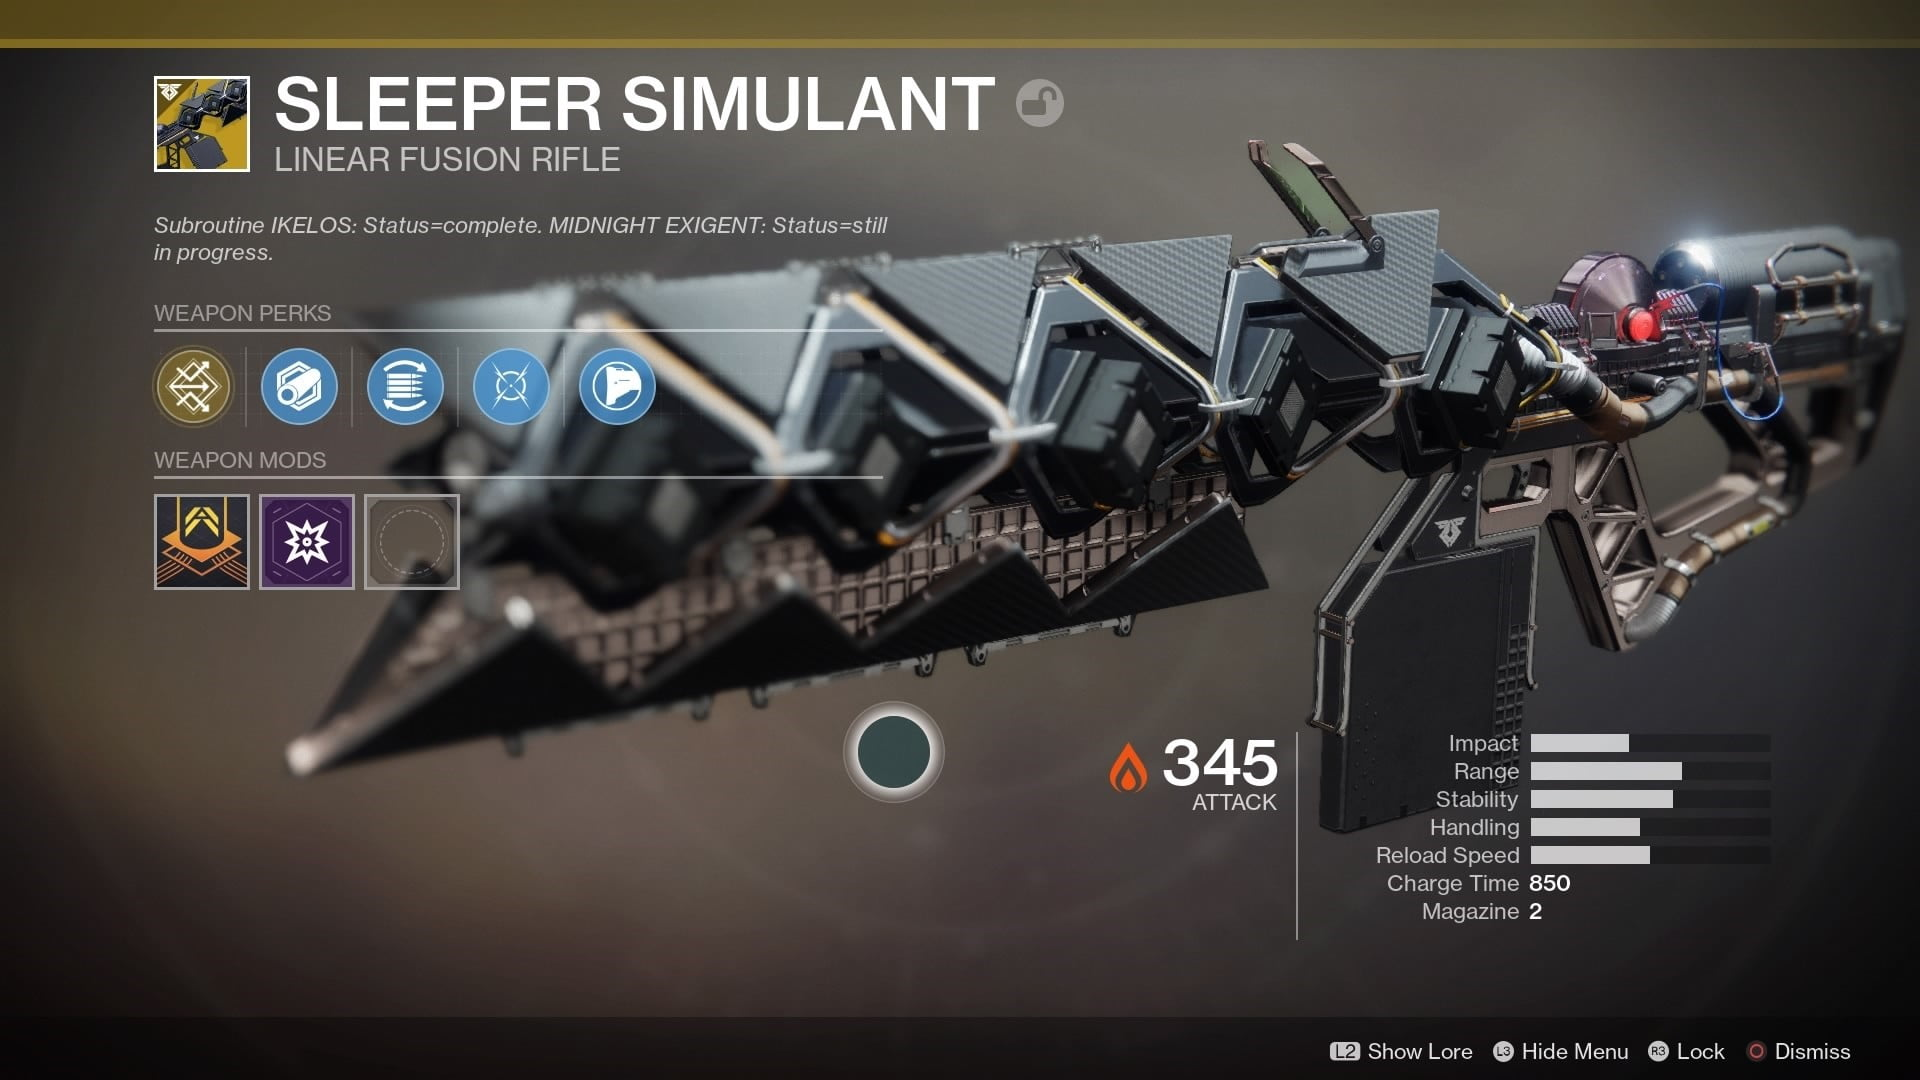 How to Get the Sleeper Simulant in Destiny 2: Warmind | Digital Trends